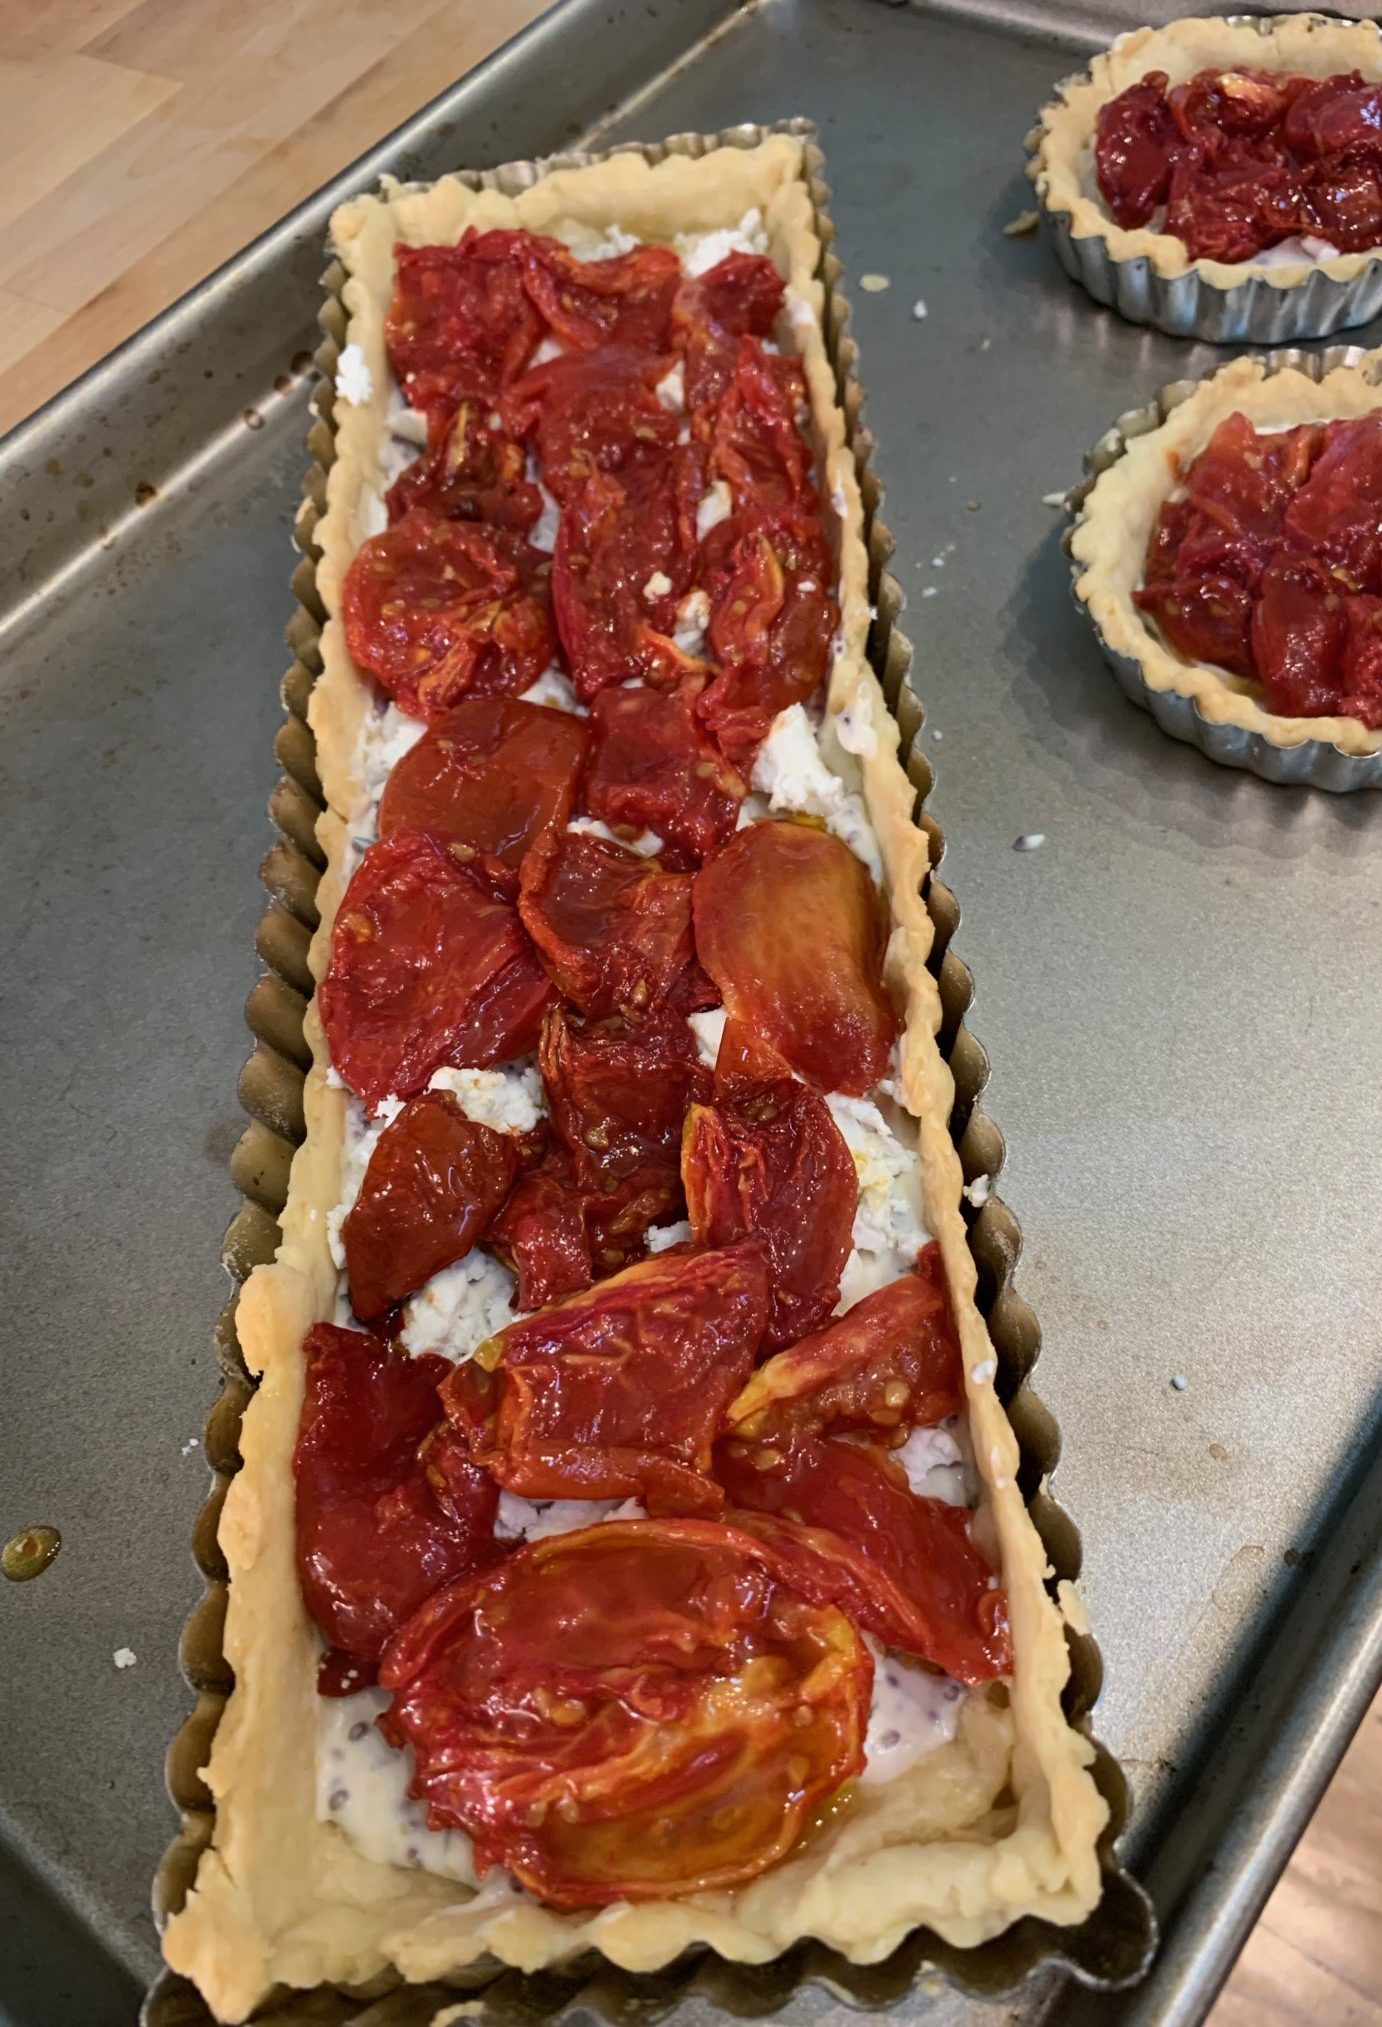 Oven-dried tomates are layered on top of the tarts